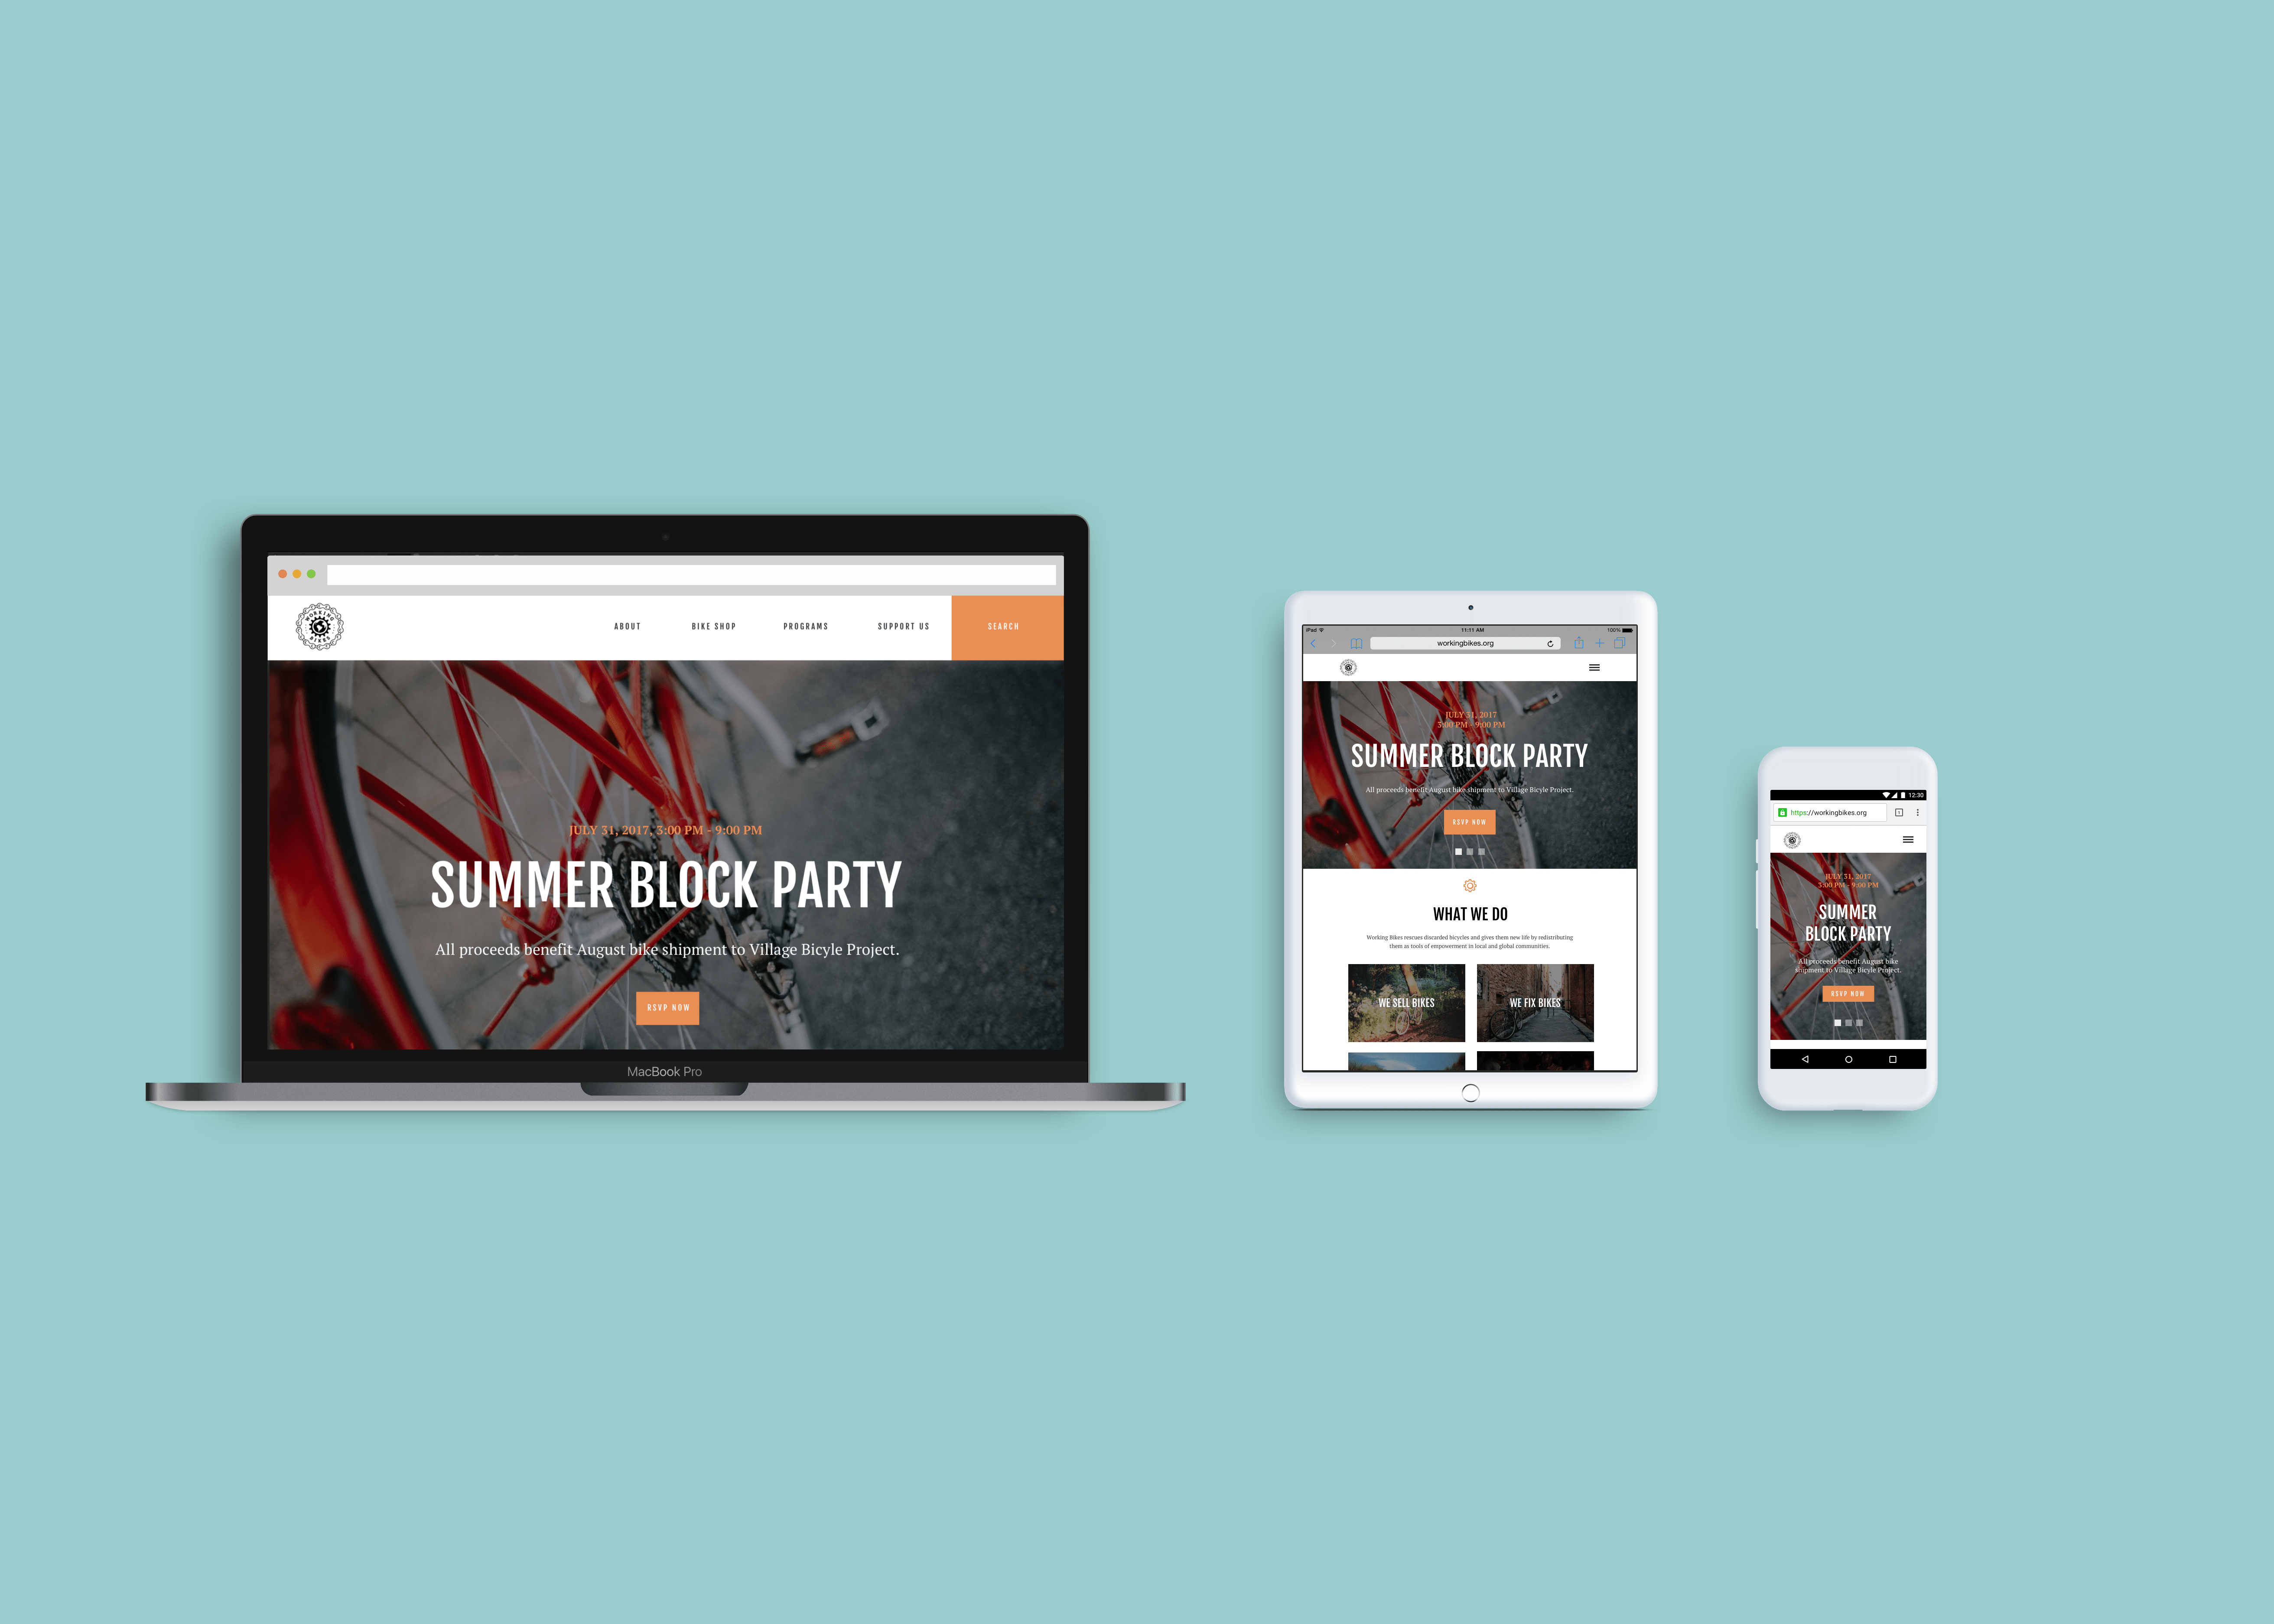 A set of four high-fidelity, full color wireframes representing the website on desktop, tablet, and mobile screens.